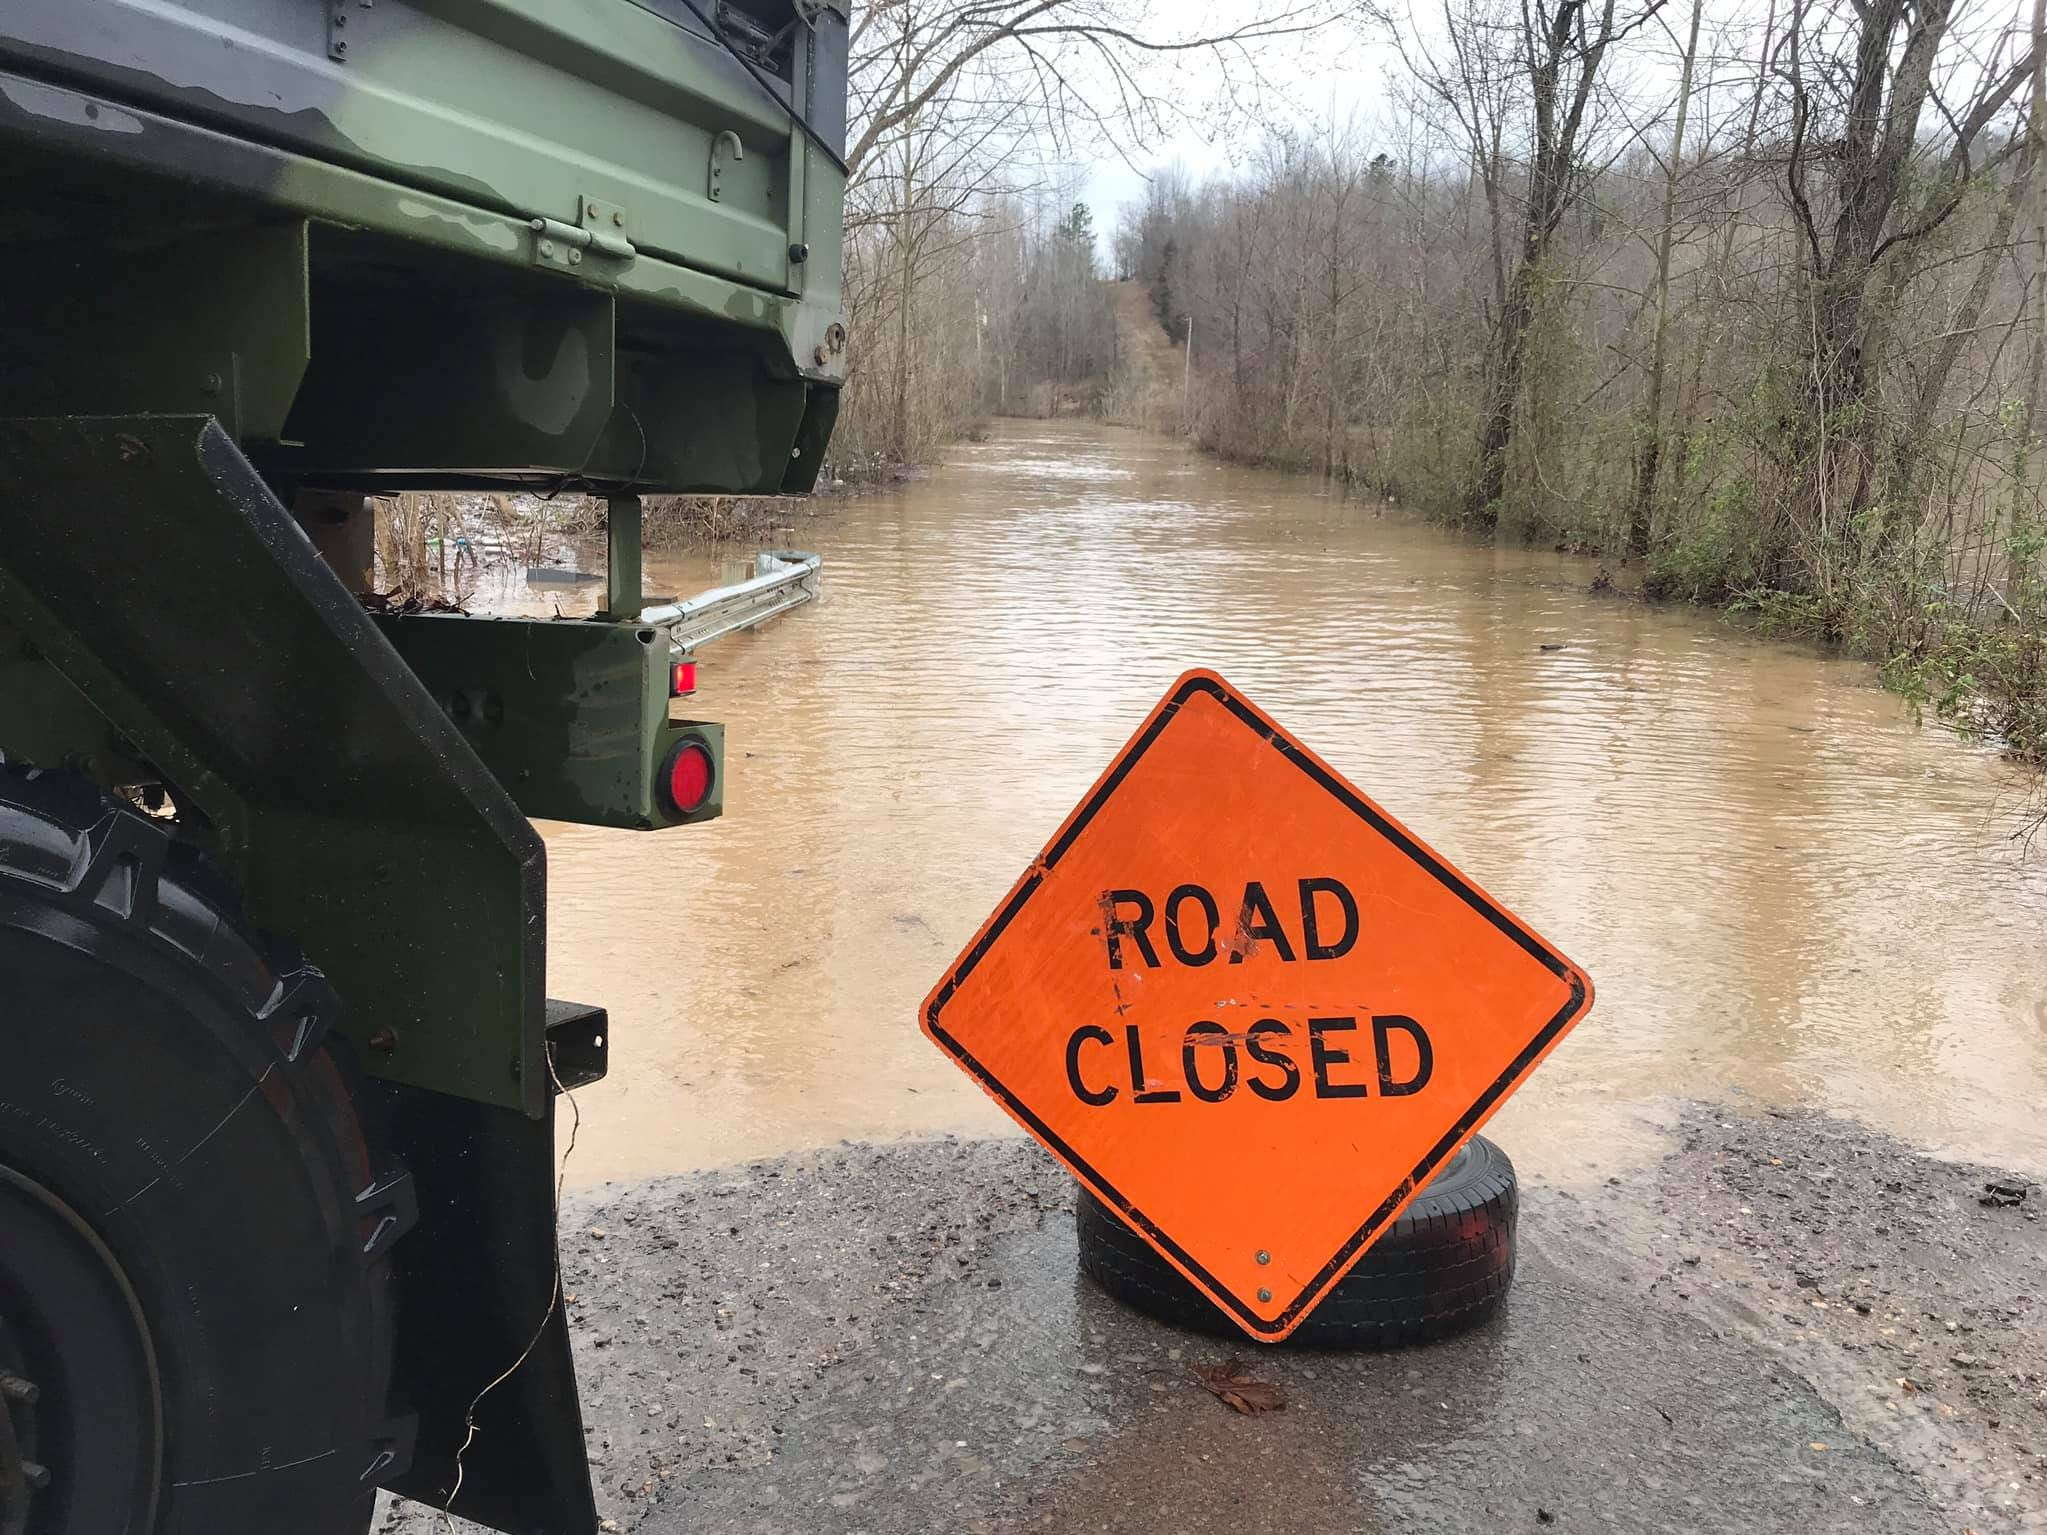 The Cumberland River levels cut off some neighborhoods in Stewart County, and on Saturday and Sunday, personnel with Emergency Management Agency and Fire Rescue delivered food and supplies to trapped residents.